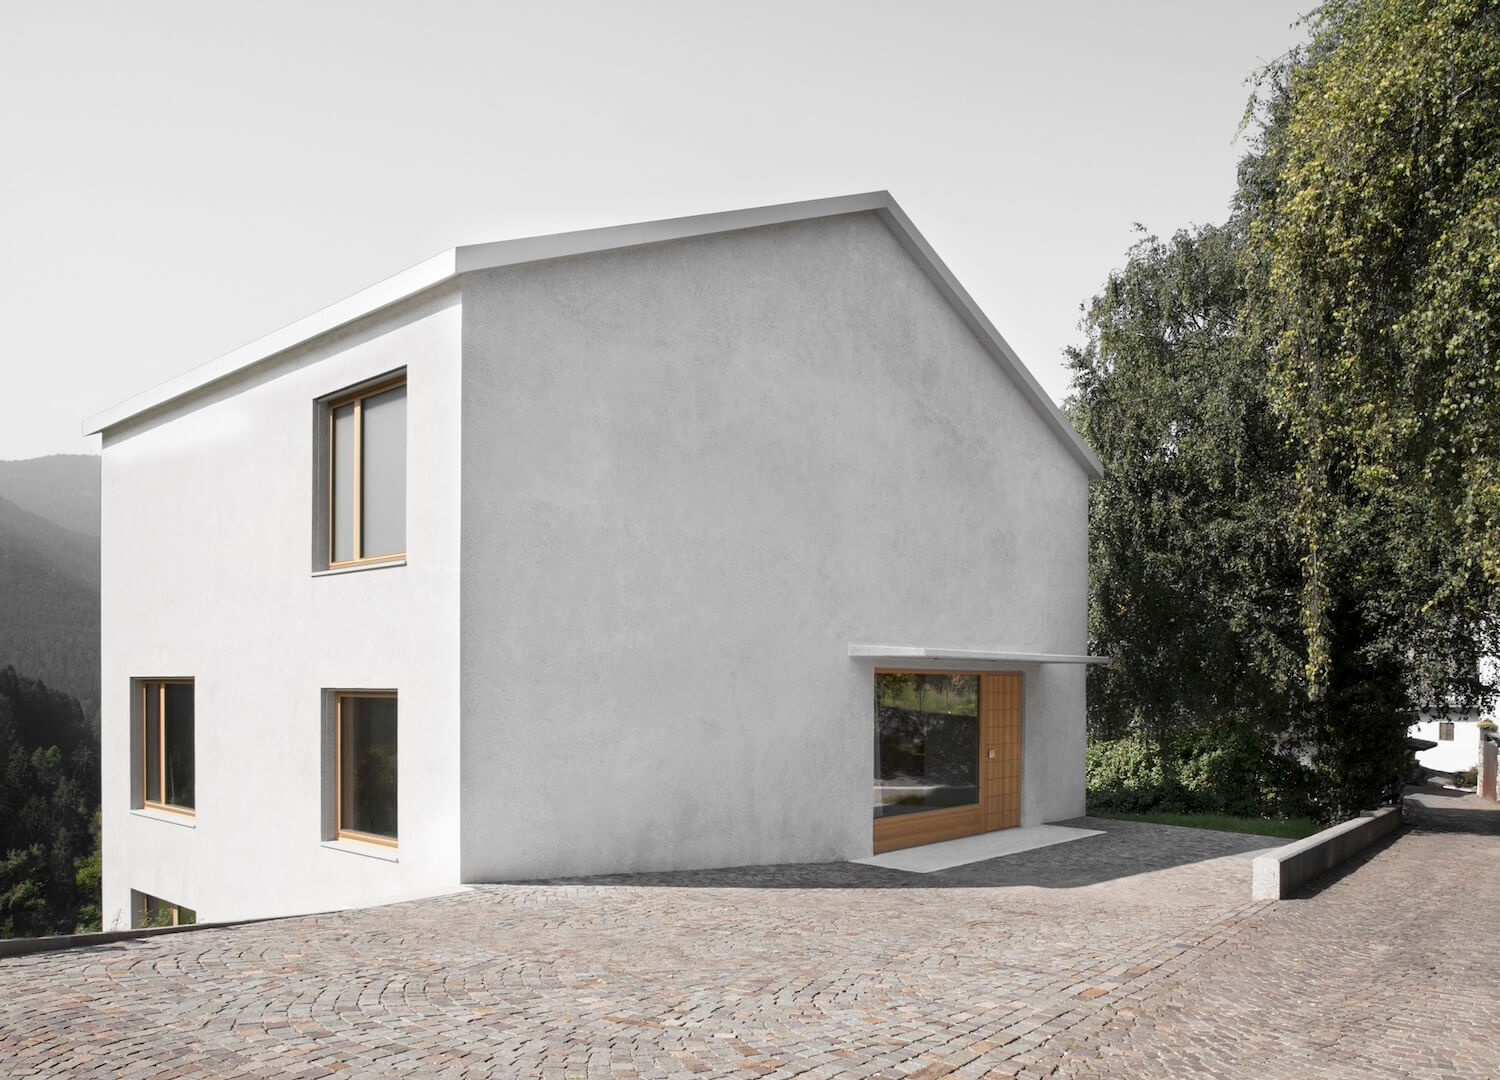 est living house hormannweg architect ellecosta 2